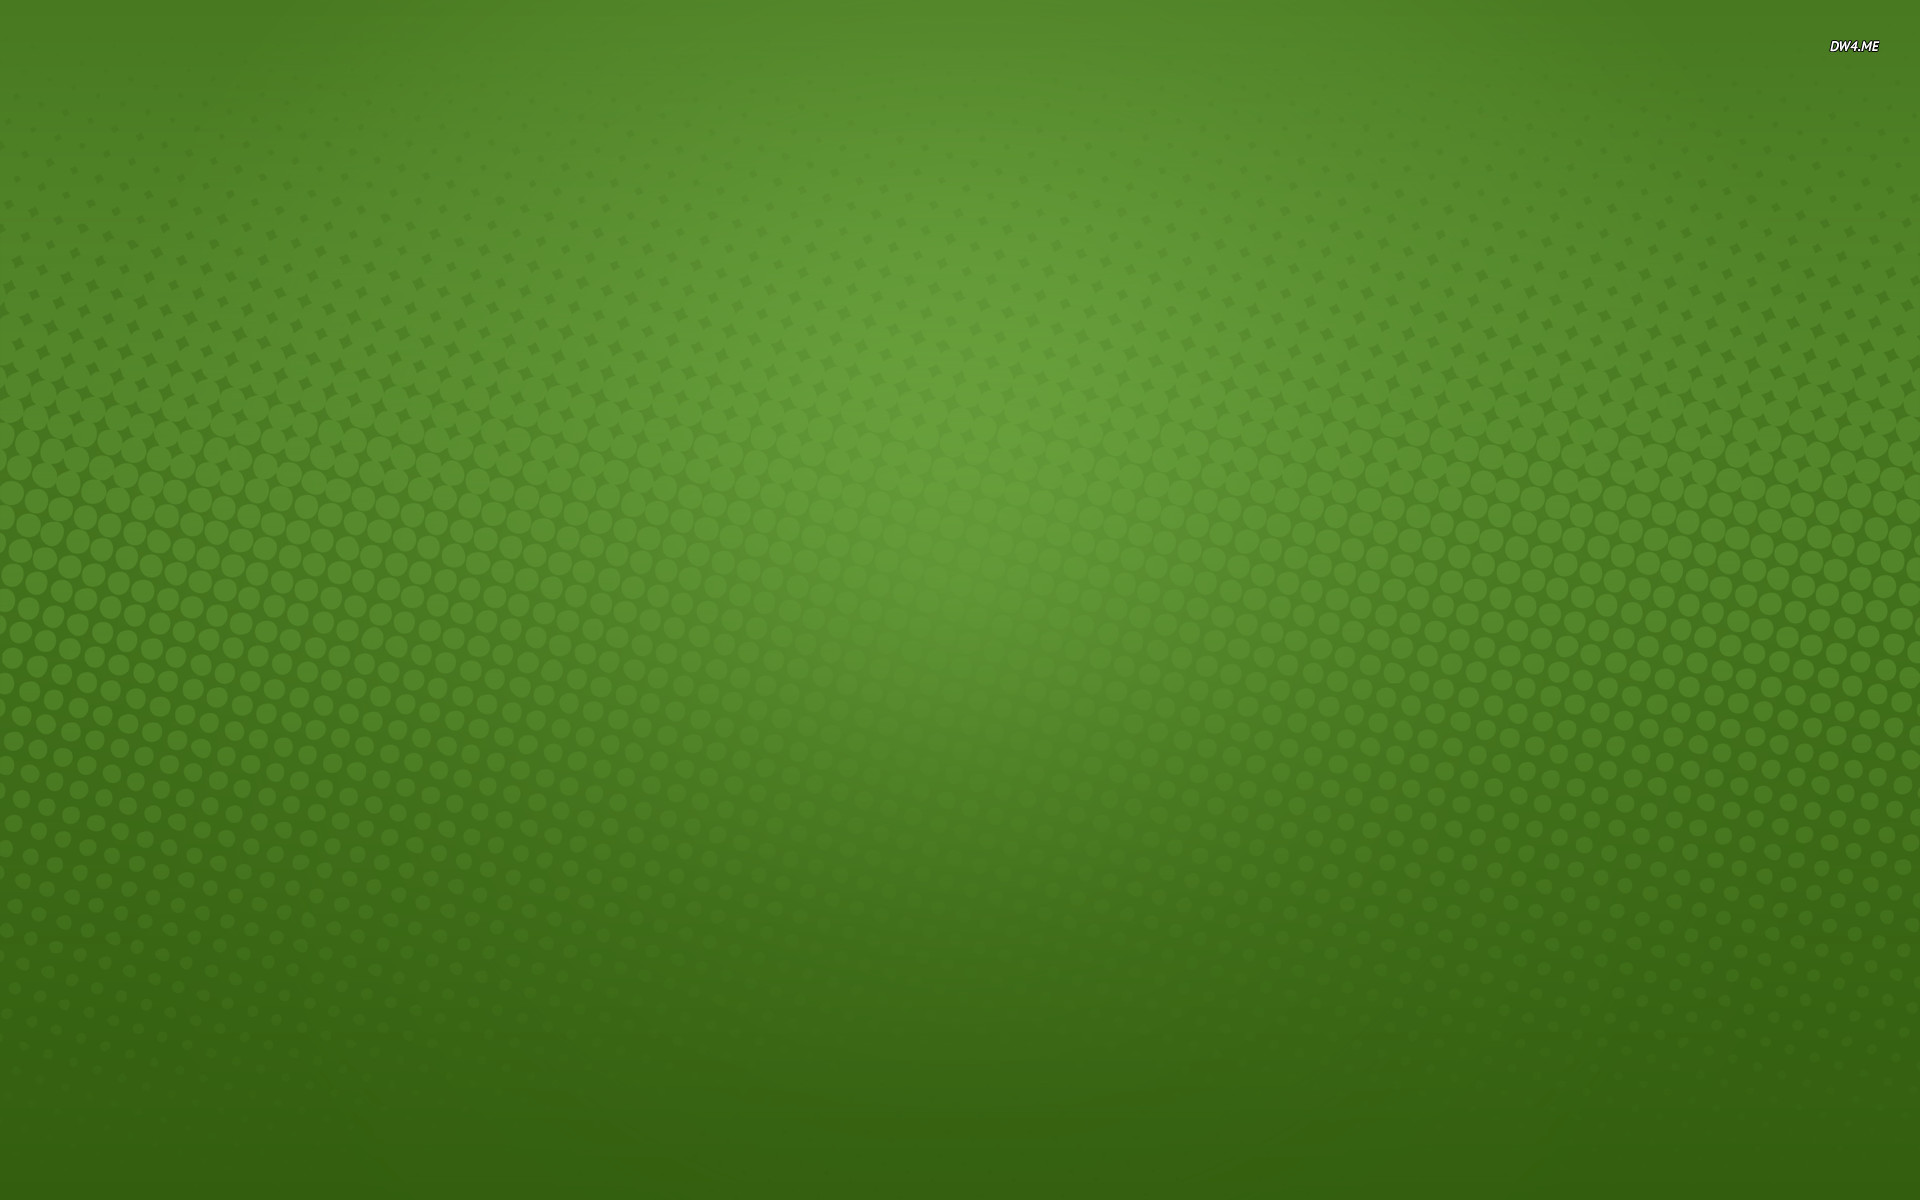 1920x1200 HD Background Dark Green Color Gradient Solid Bright Light .